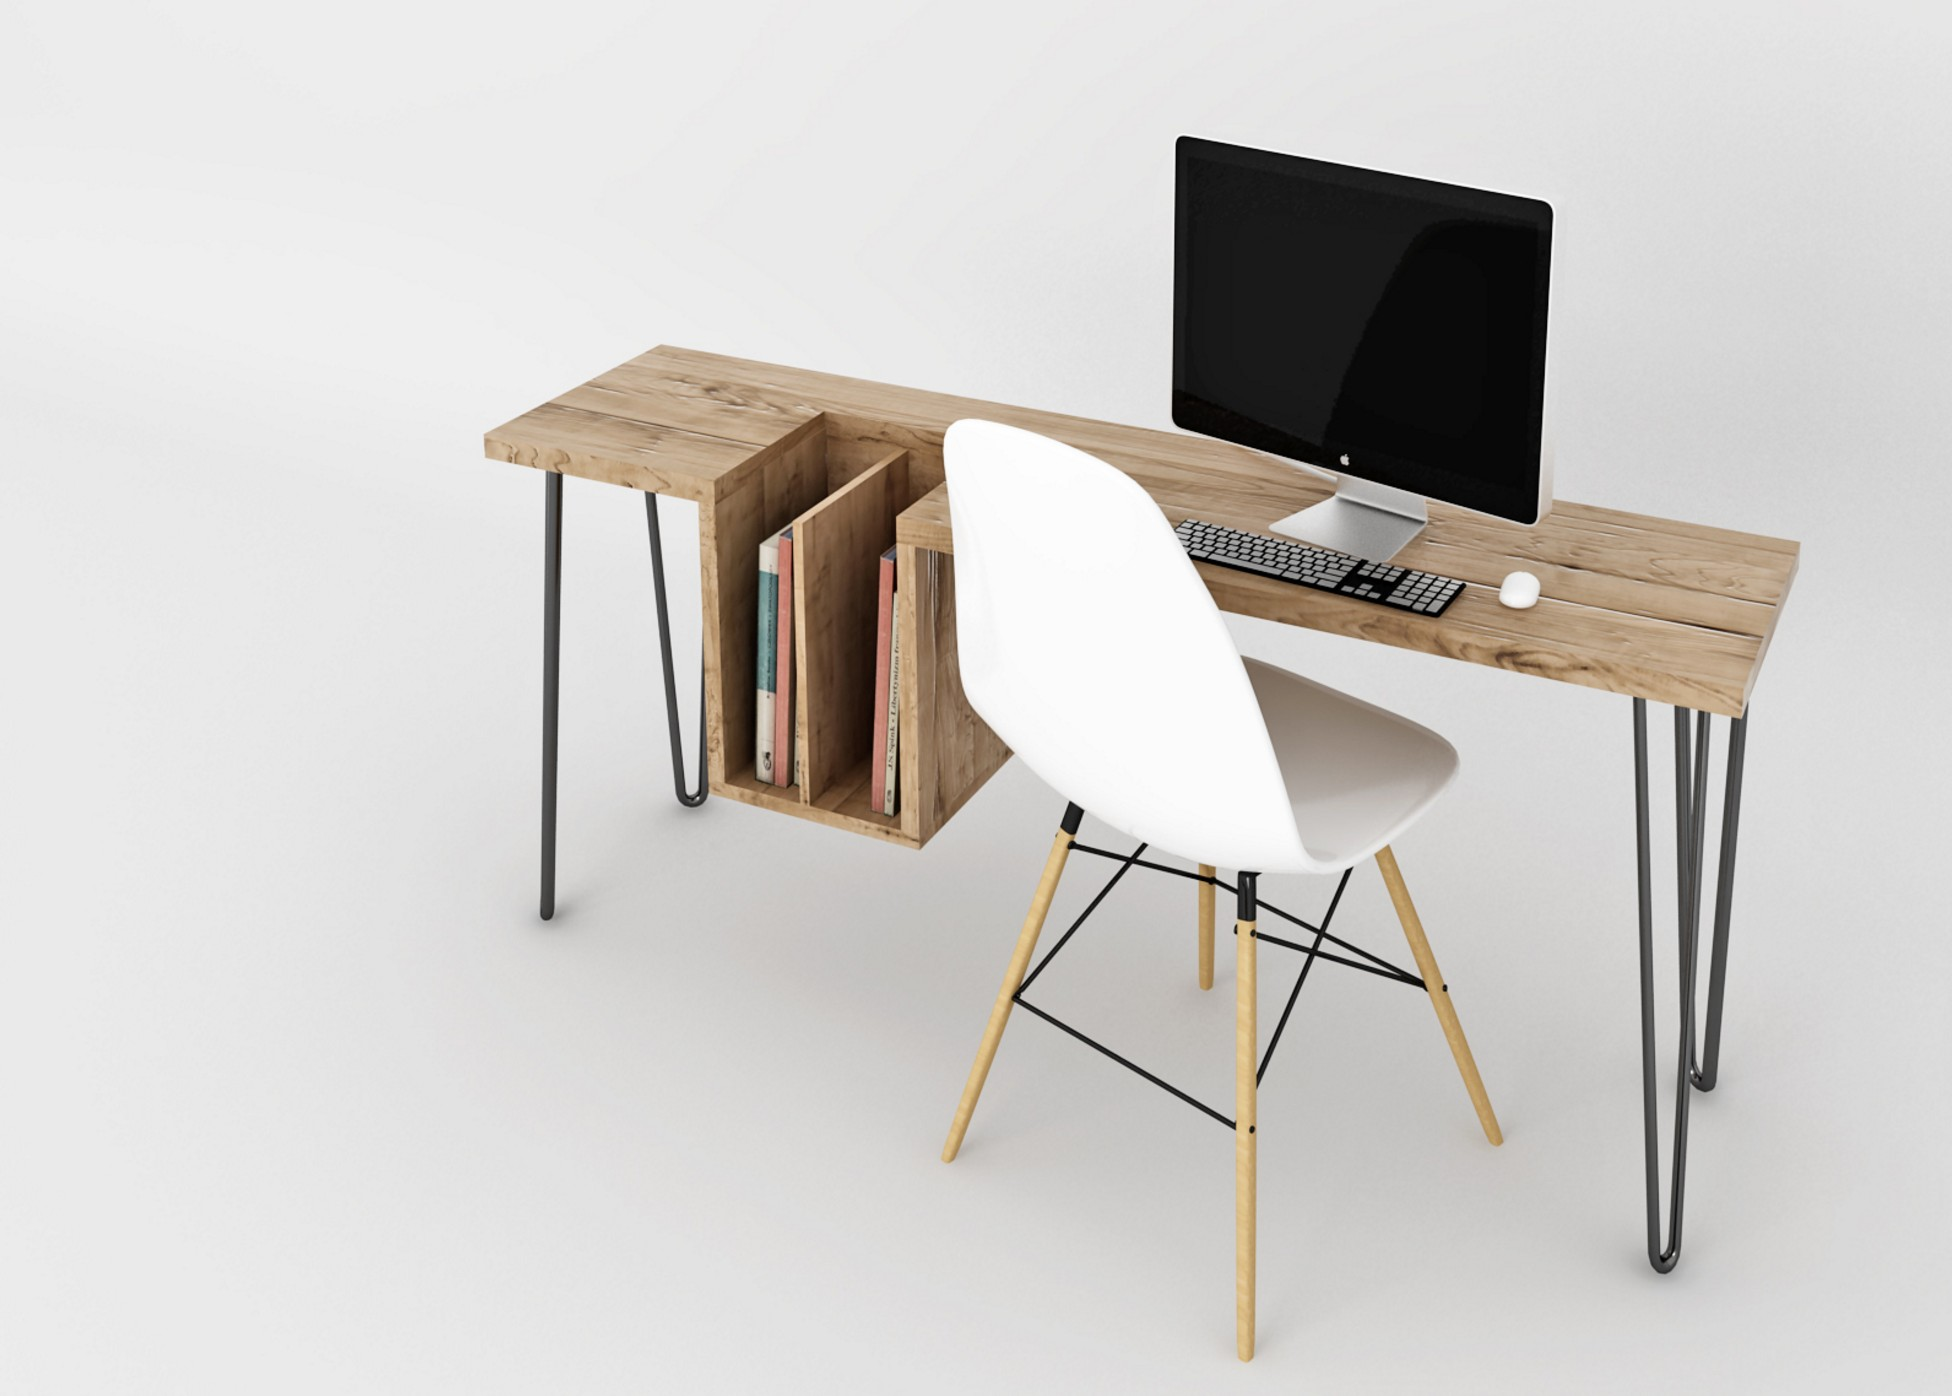 Bureau Design Bois 5 Blog D Co Design